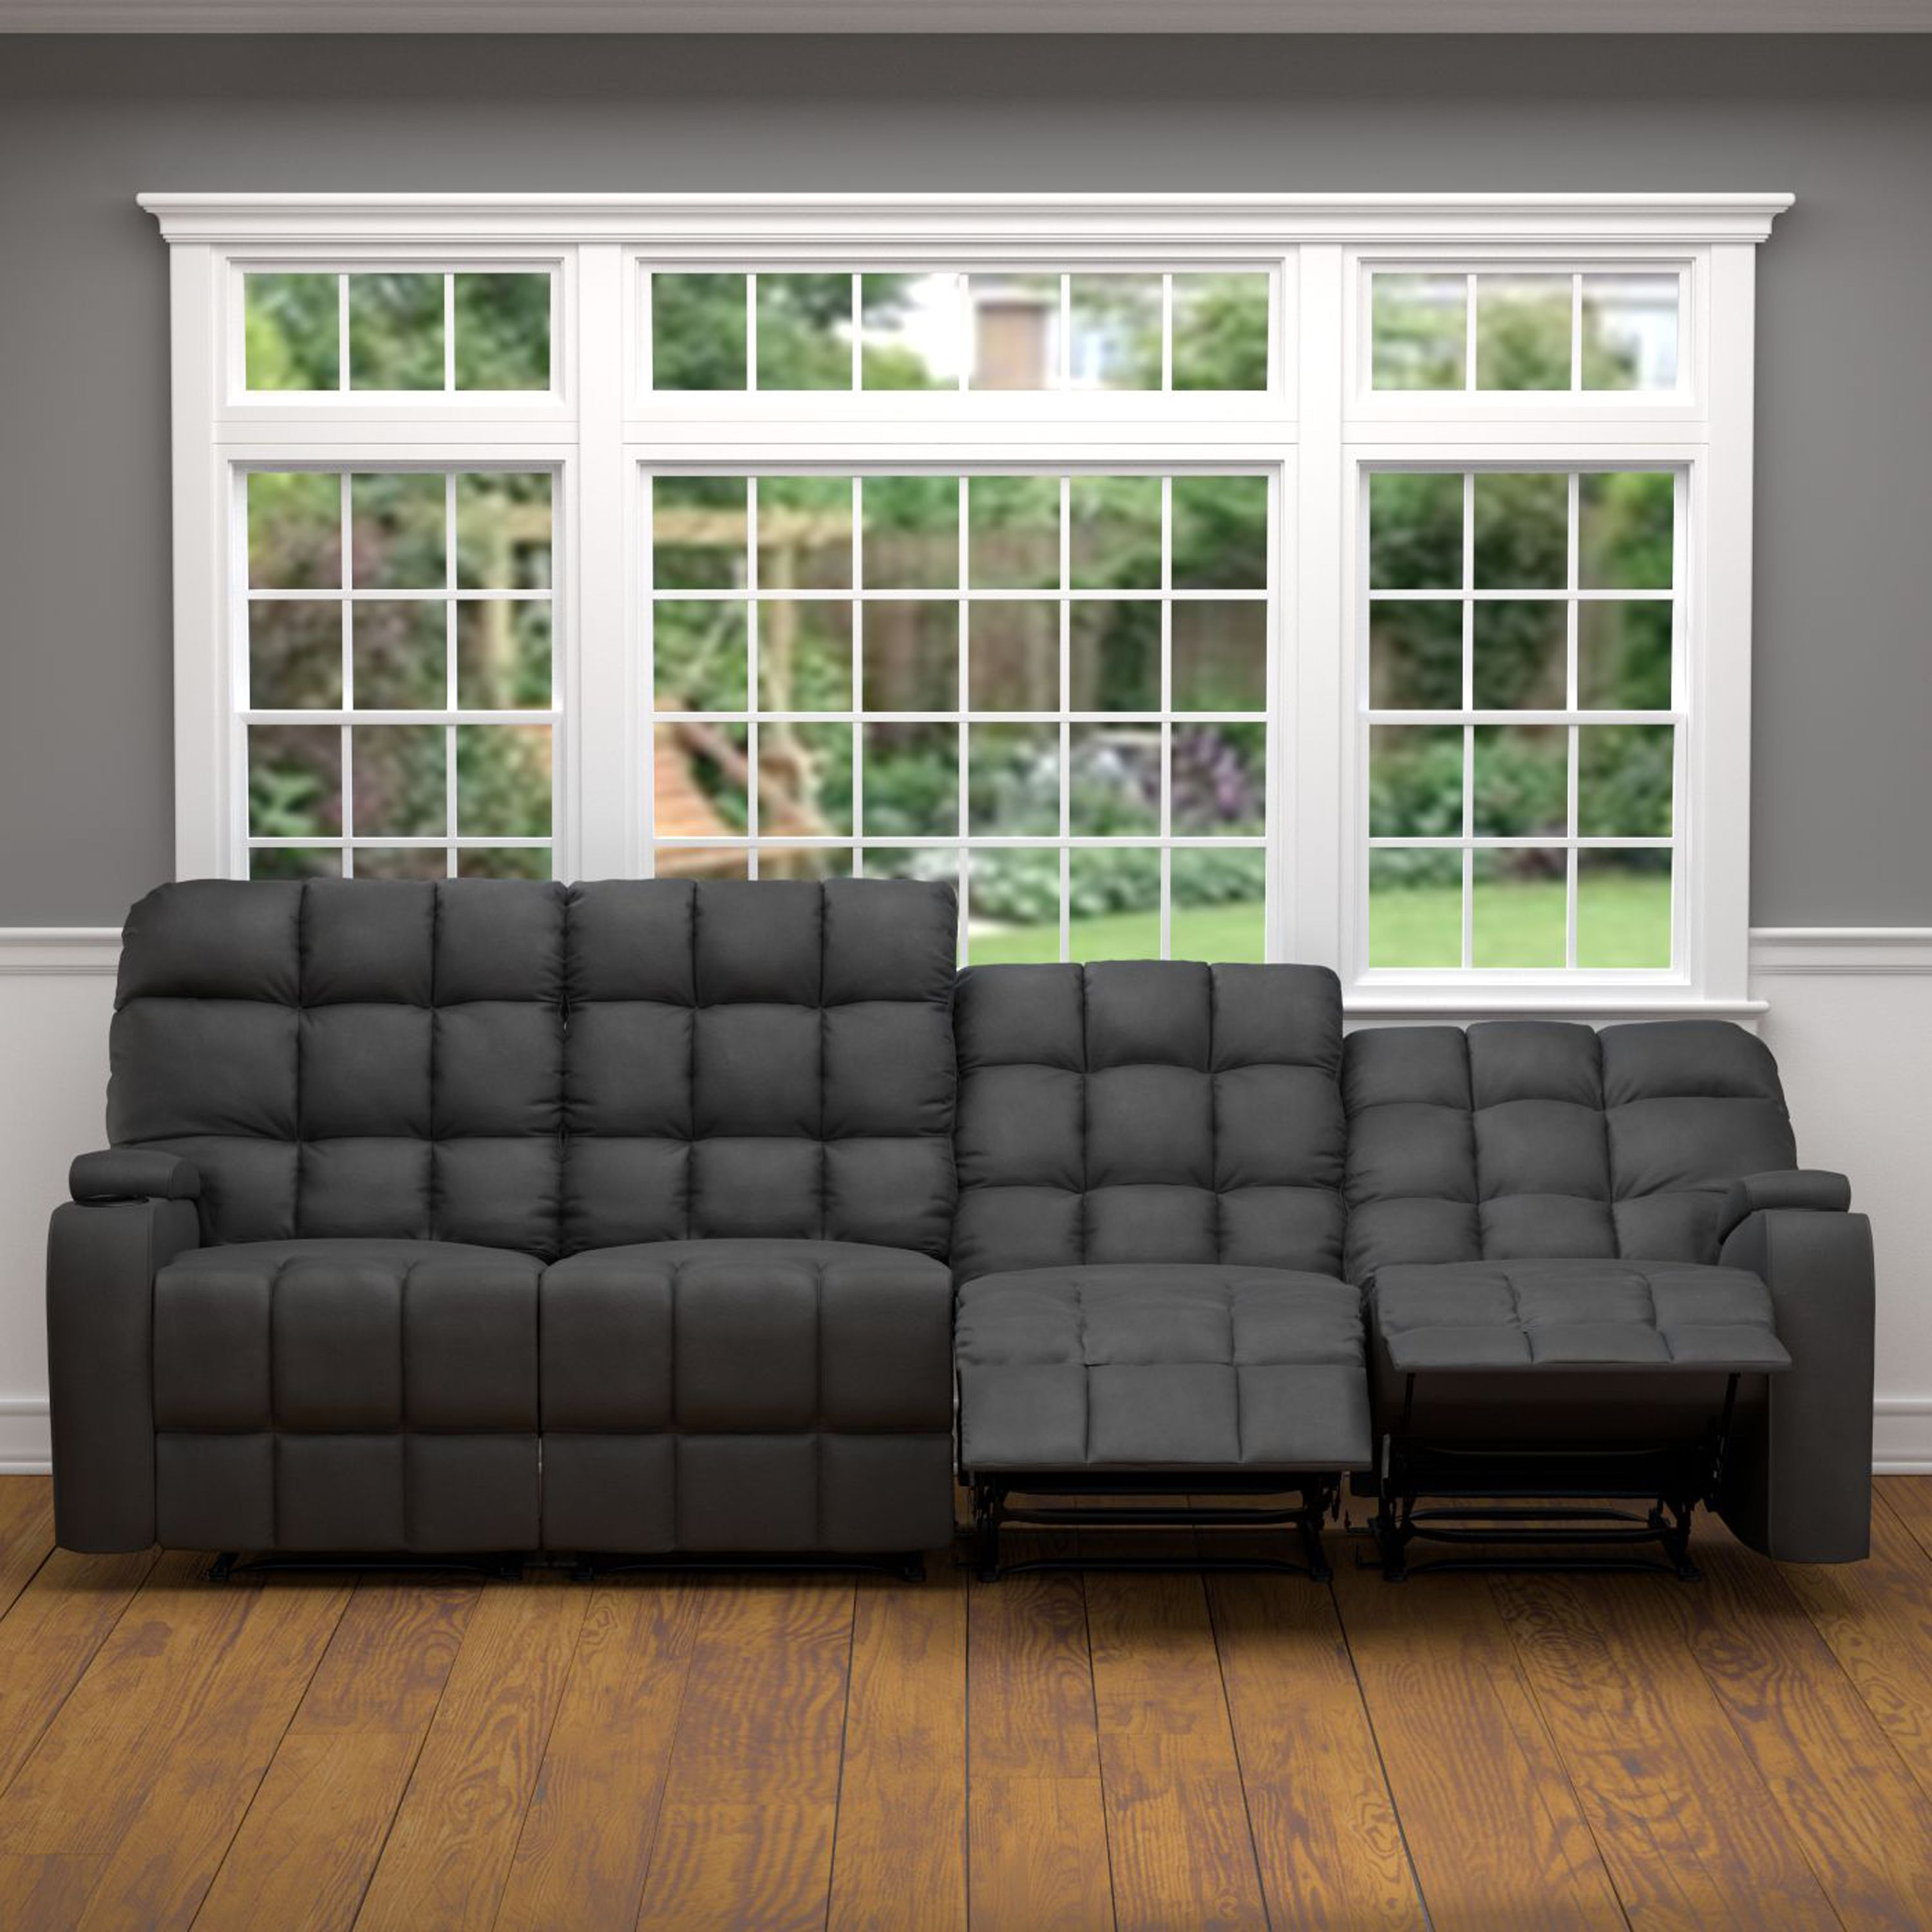 Awesome PORTFOLIO ProLounger Grey Microfiber Wall Hugger Storage 4 Seat Reclining  Sofa (Grey   4 PC